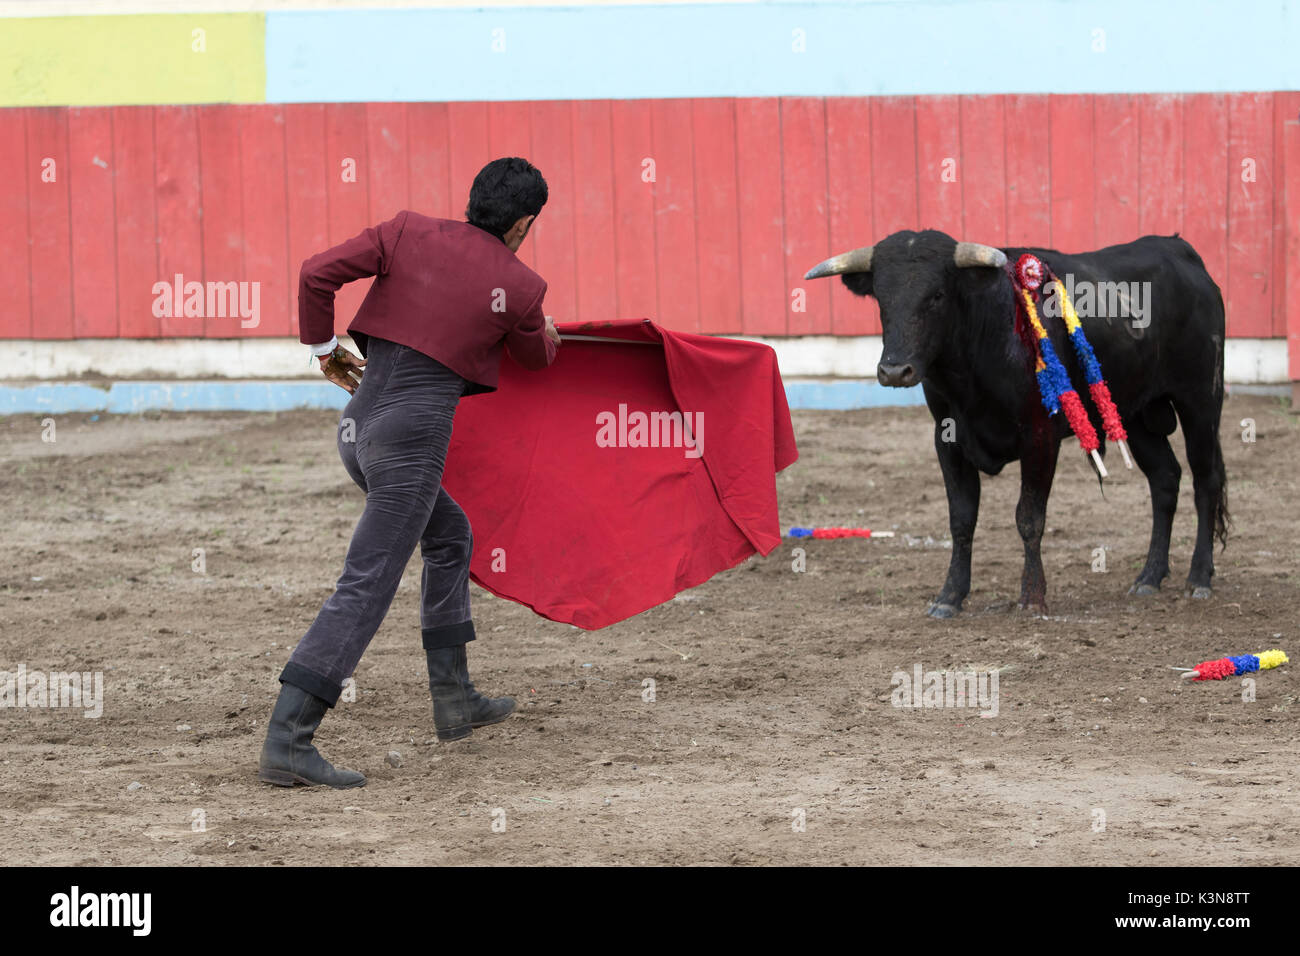 June 18, 2017 Pujili, Ecuador: bullfighter holds up a red cape in front of the bull in the arena - Stock Image